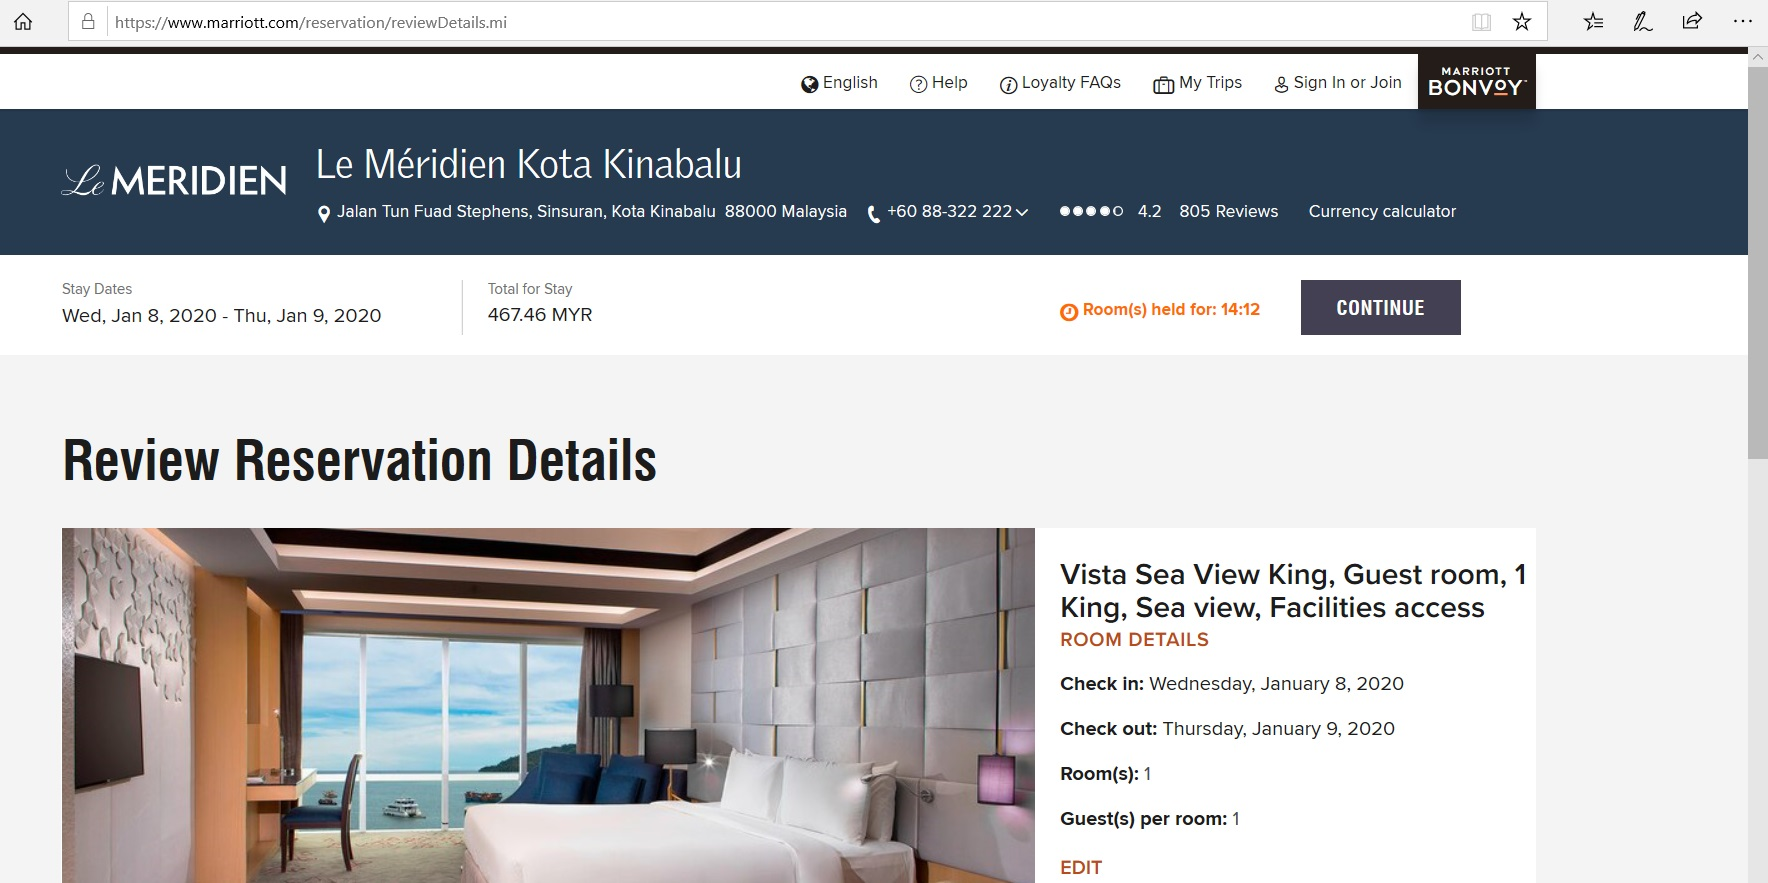 Page to review hotel reservation details.